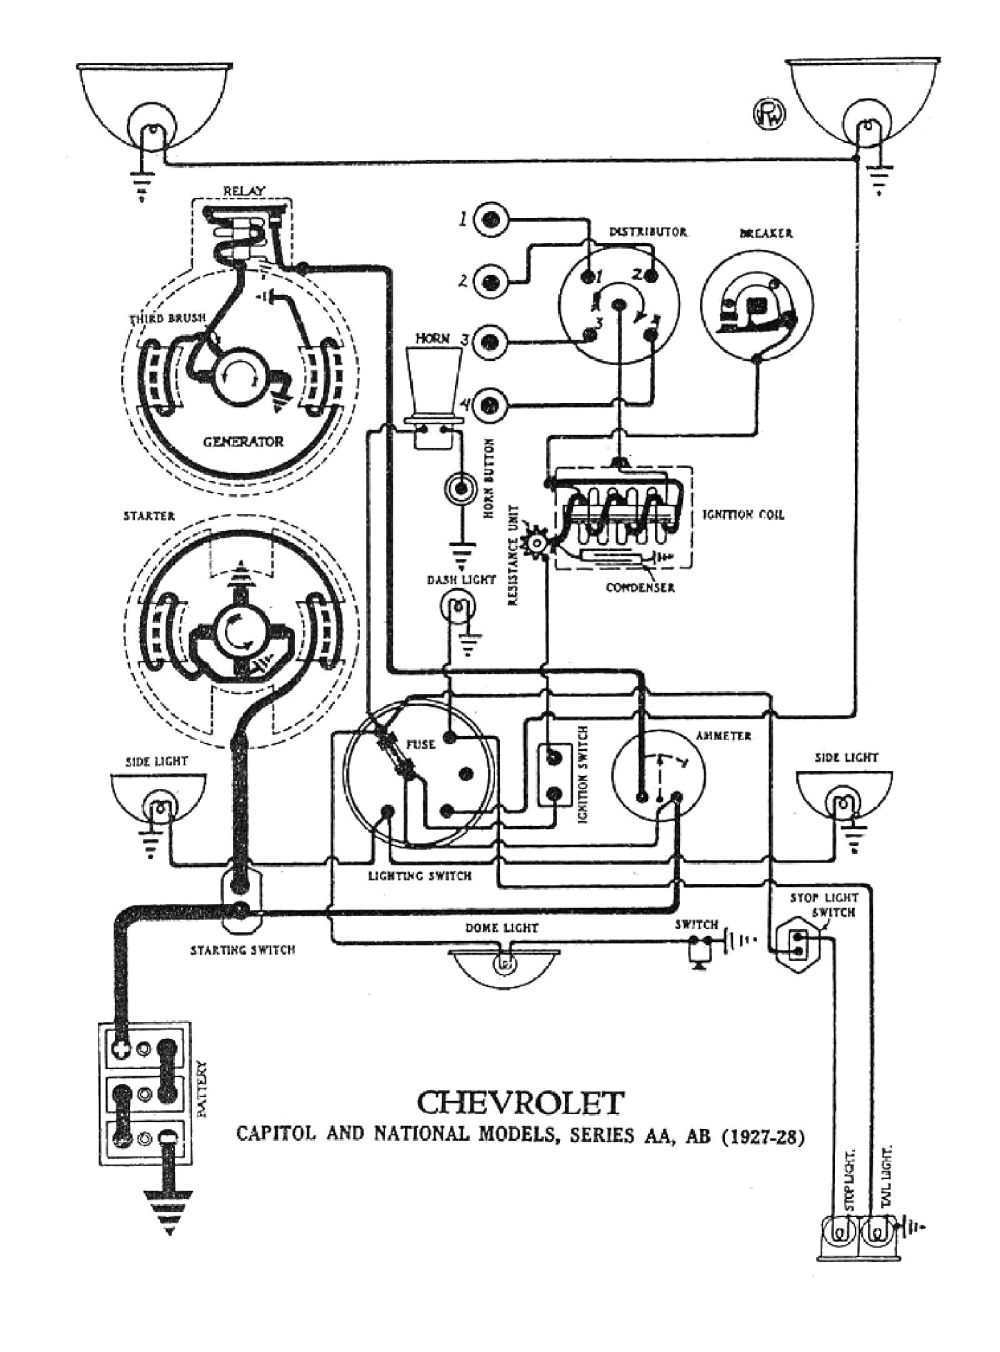 medium resolution of wiring diagrams 1957 chevrolet truck diagram get free image about1957 chevy truck wiring harness diagram free